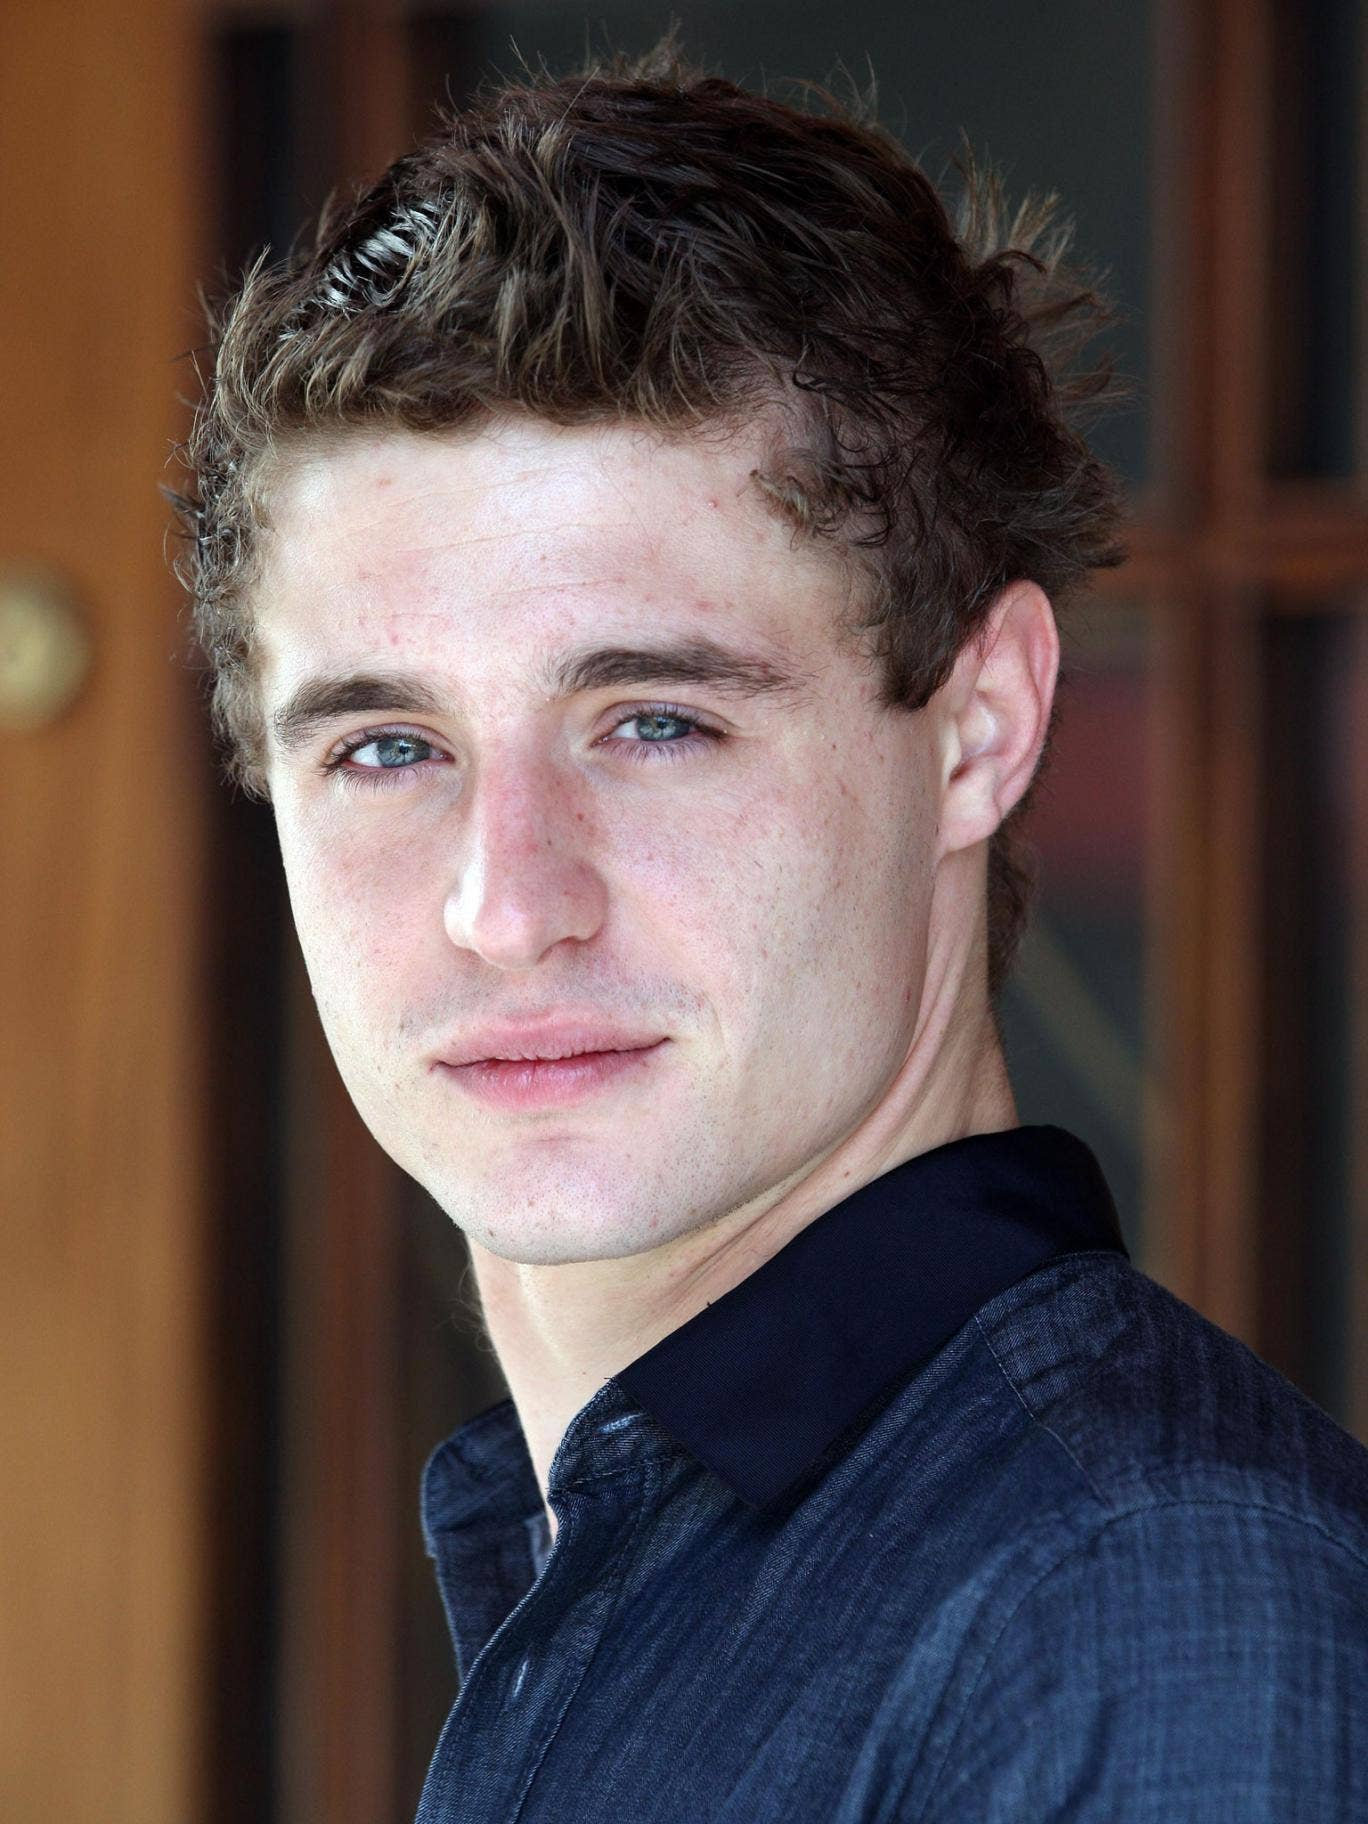 His own man Max Irons would prefer not to be known as the 'next R-Patz'